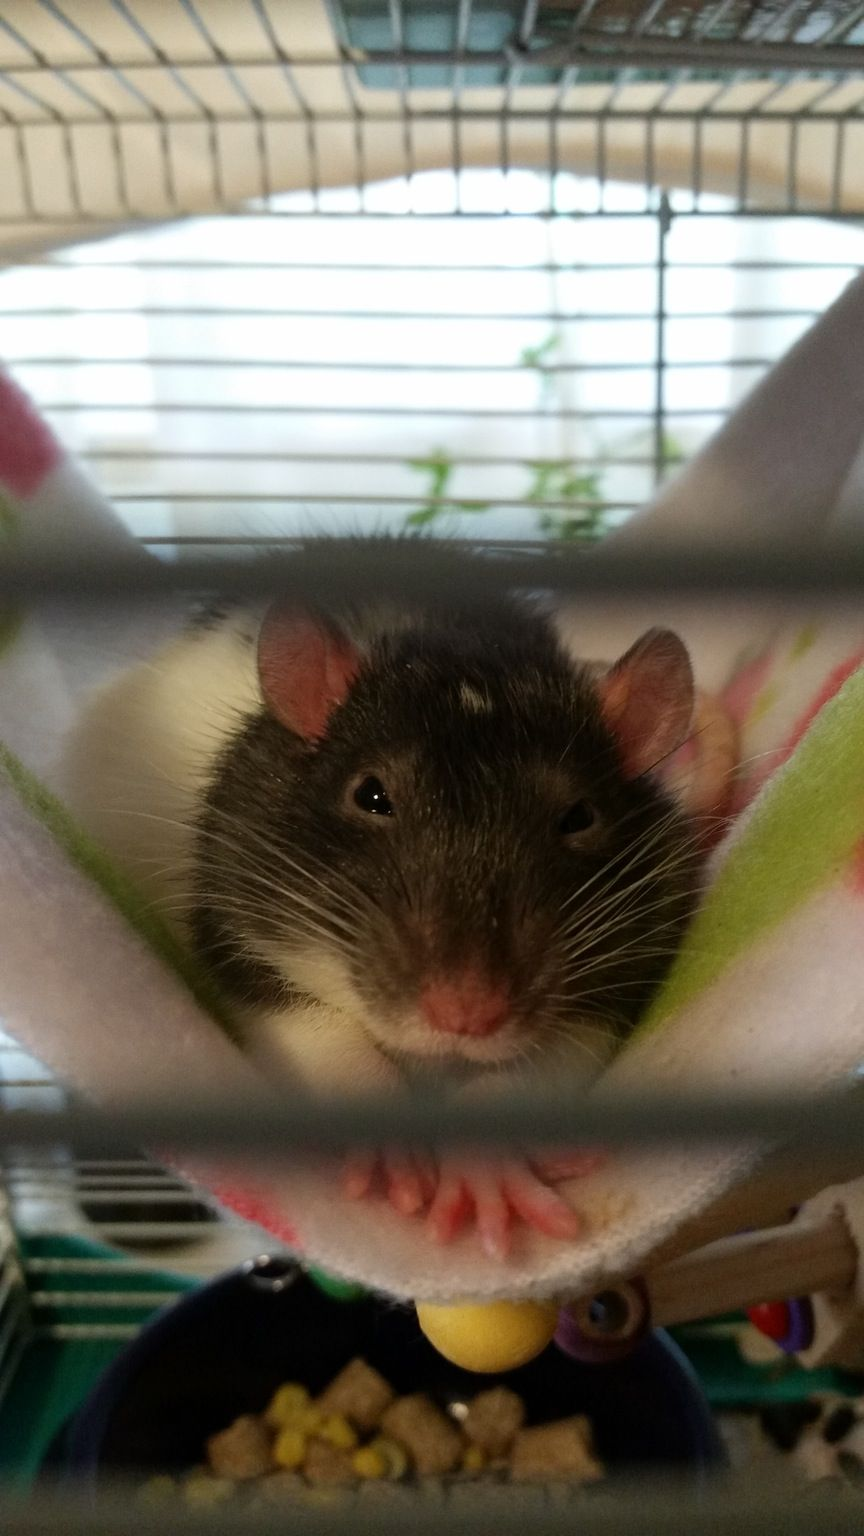 Pin by Alexzander on Rats Funny rats, Pet rats, Little pets